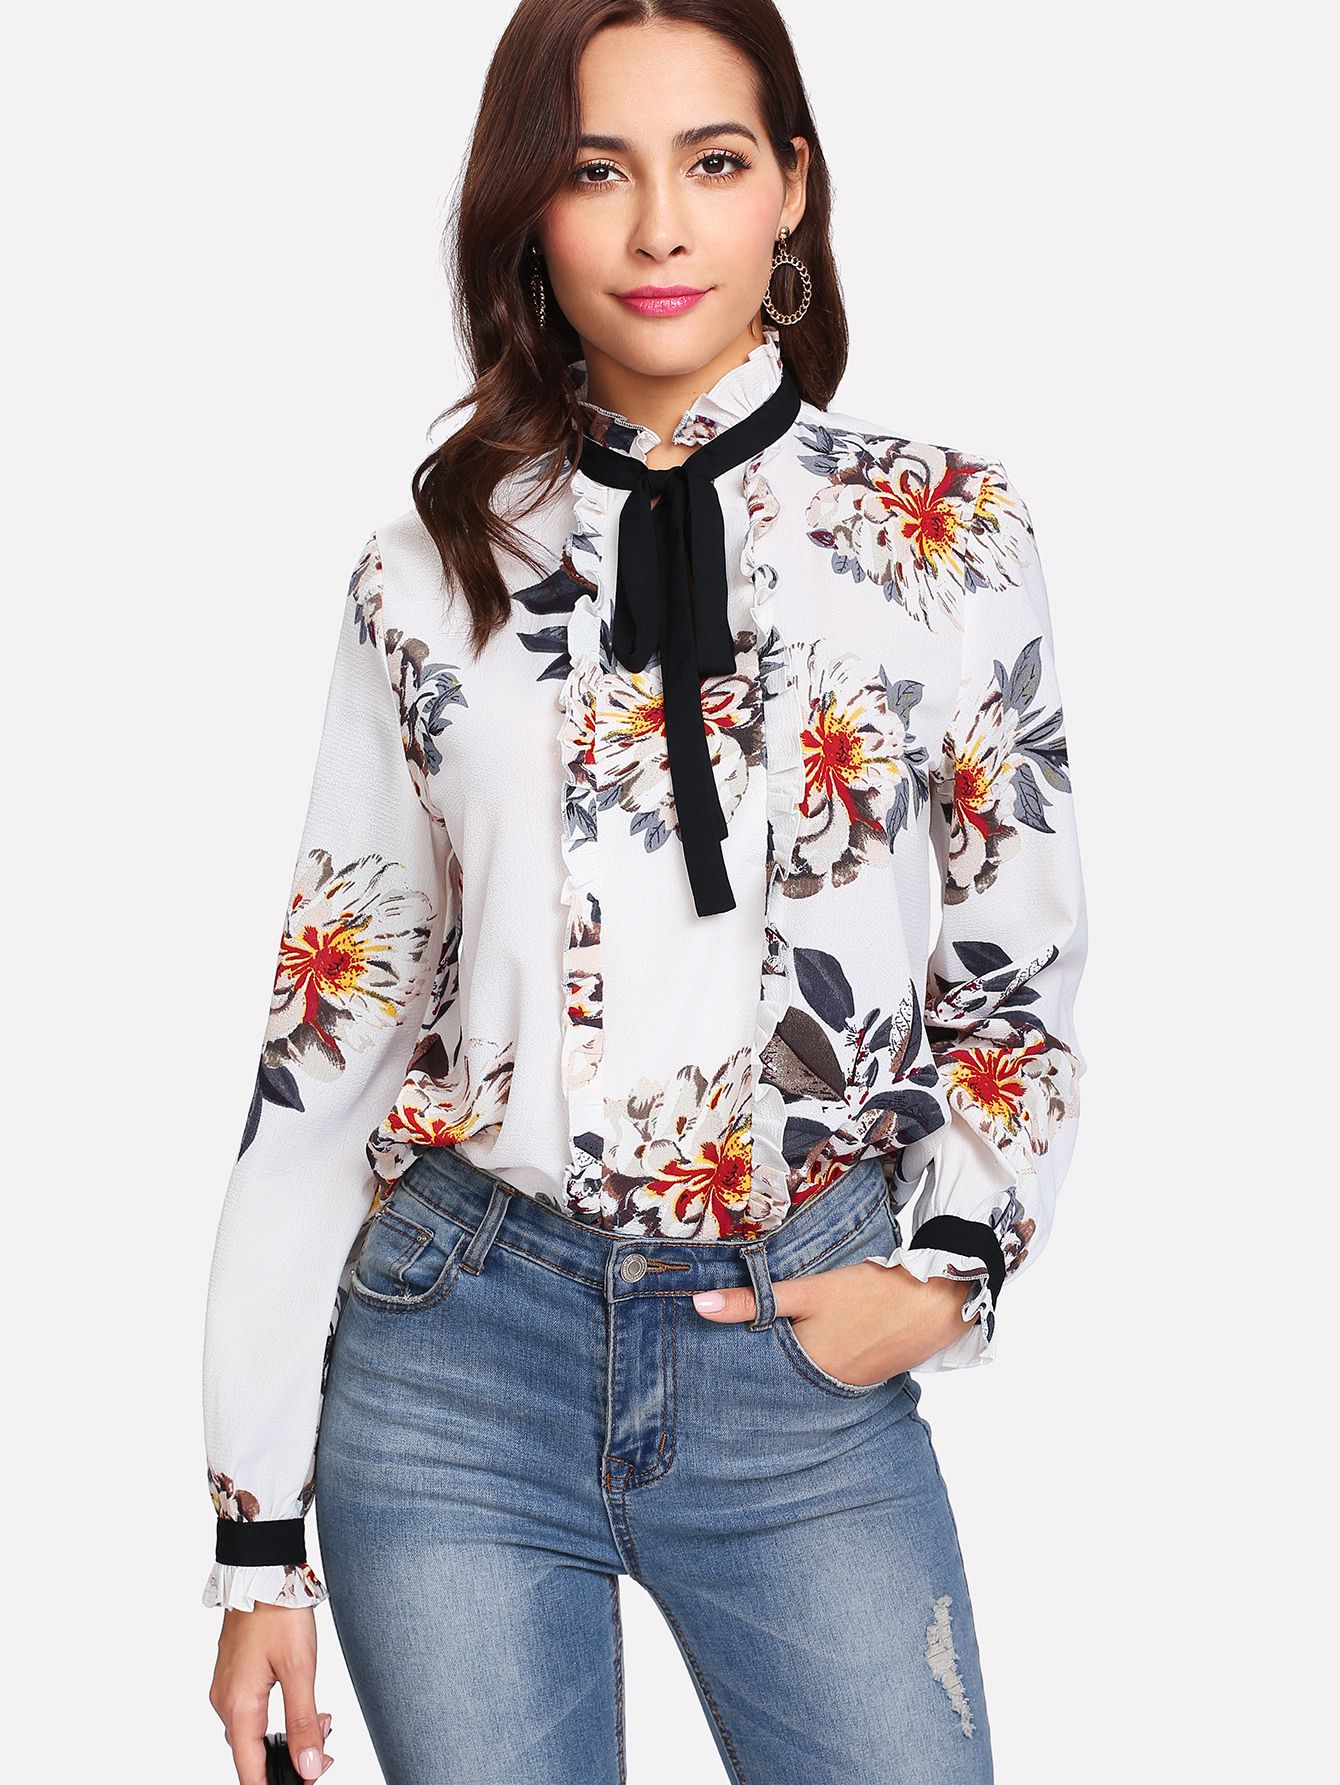 be4564aa91 Shop Frill Detail Tied Neck Floral Blouse online. SheIn offers Frill Detail  Tied Neck Floral Blouse & more to fit your fashionable needs.